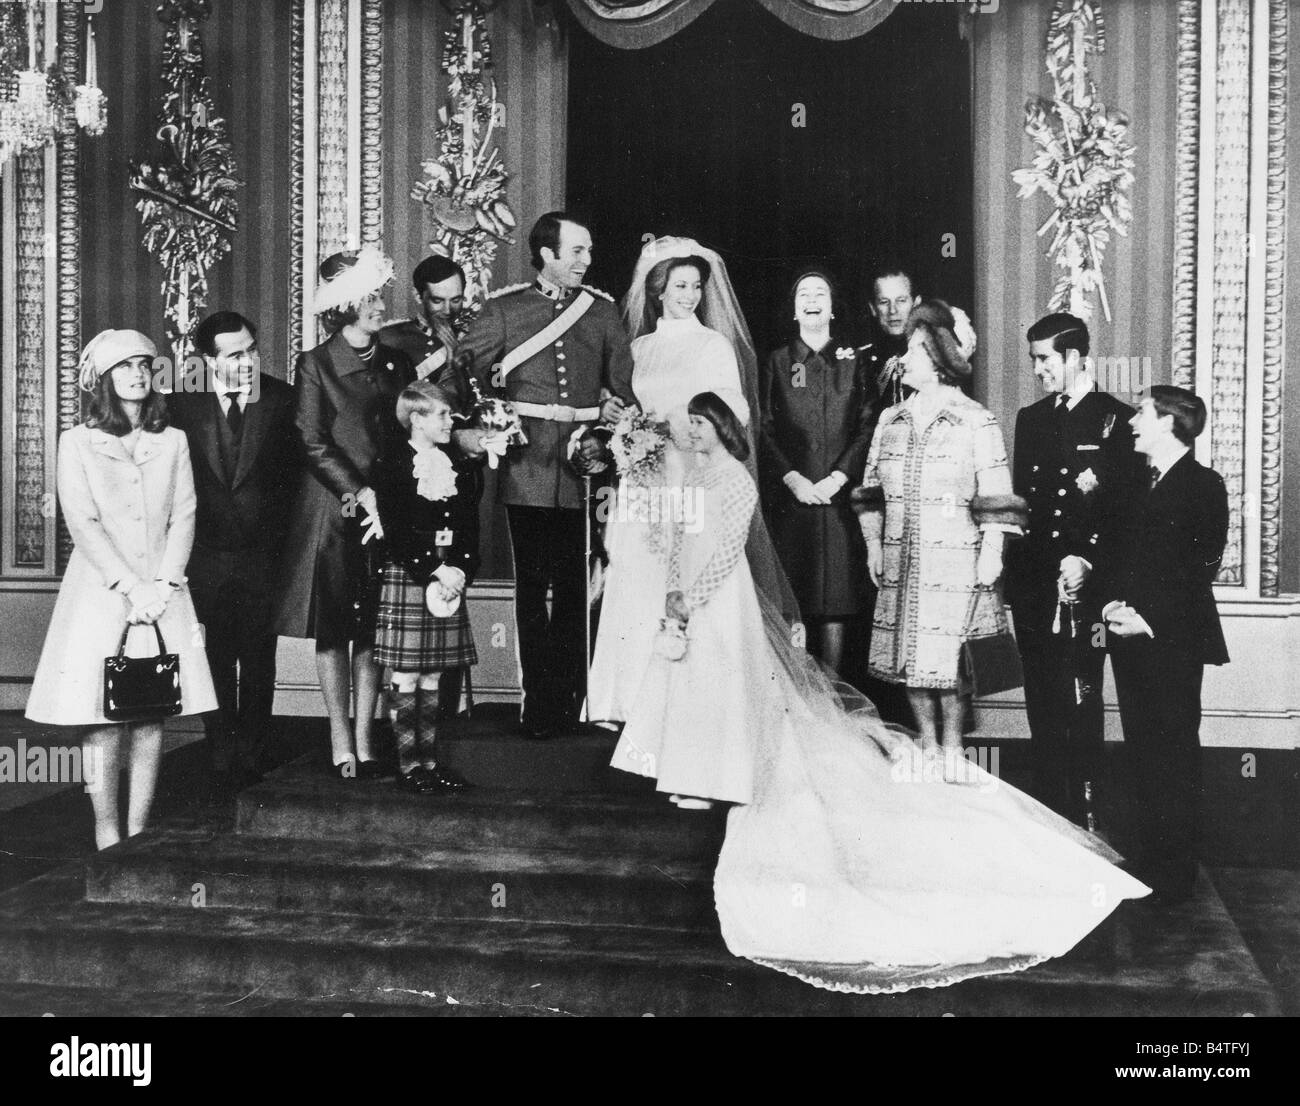 The wedding of Princess Anne and Capt Mark Phillips at Westinster ...